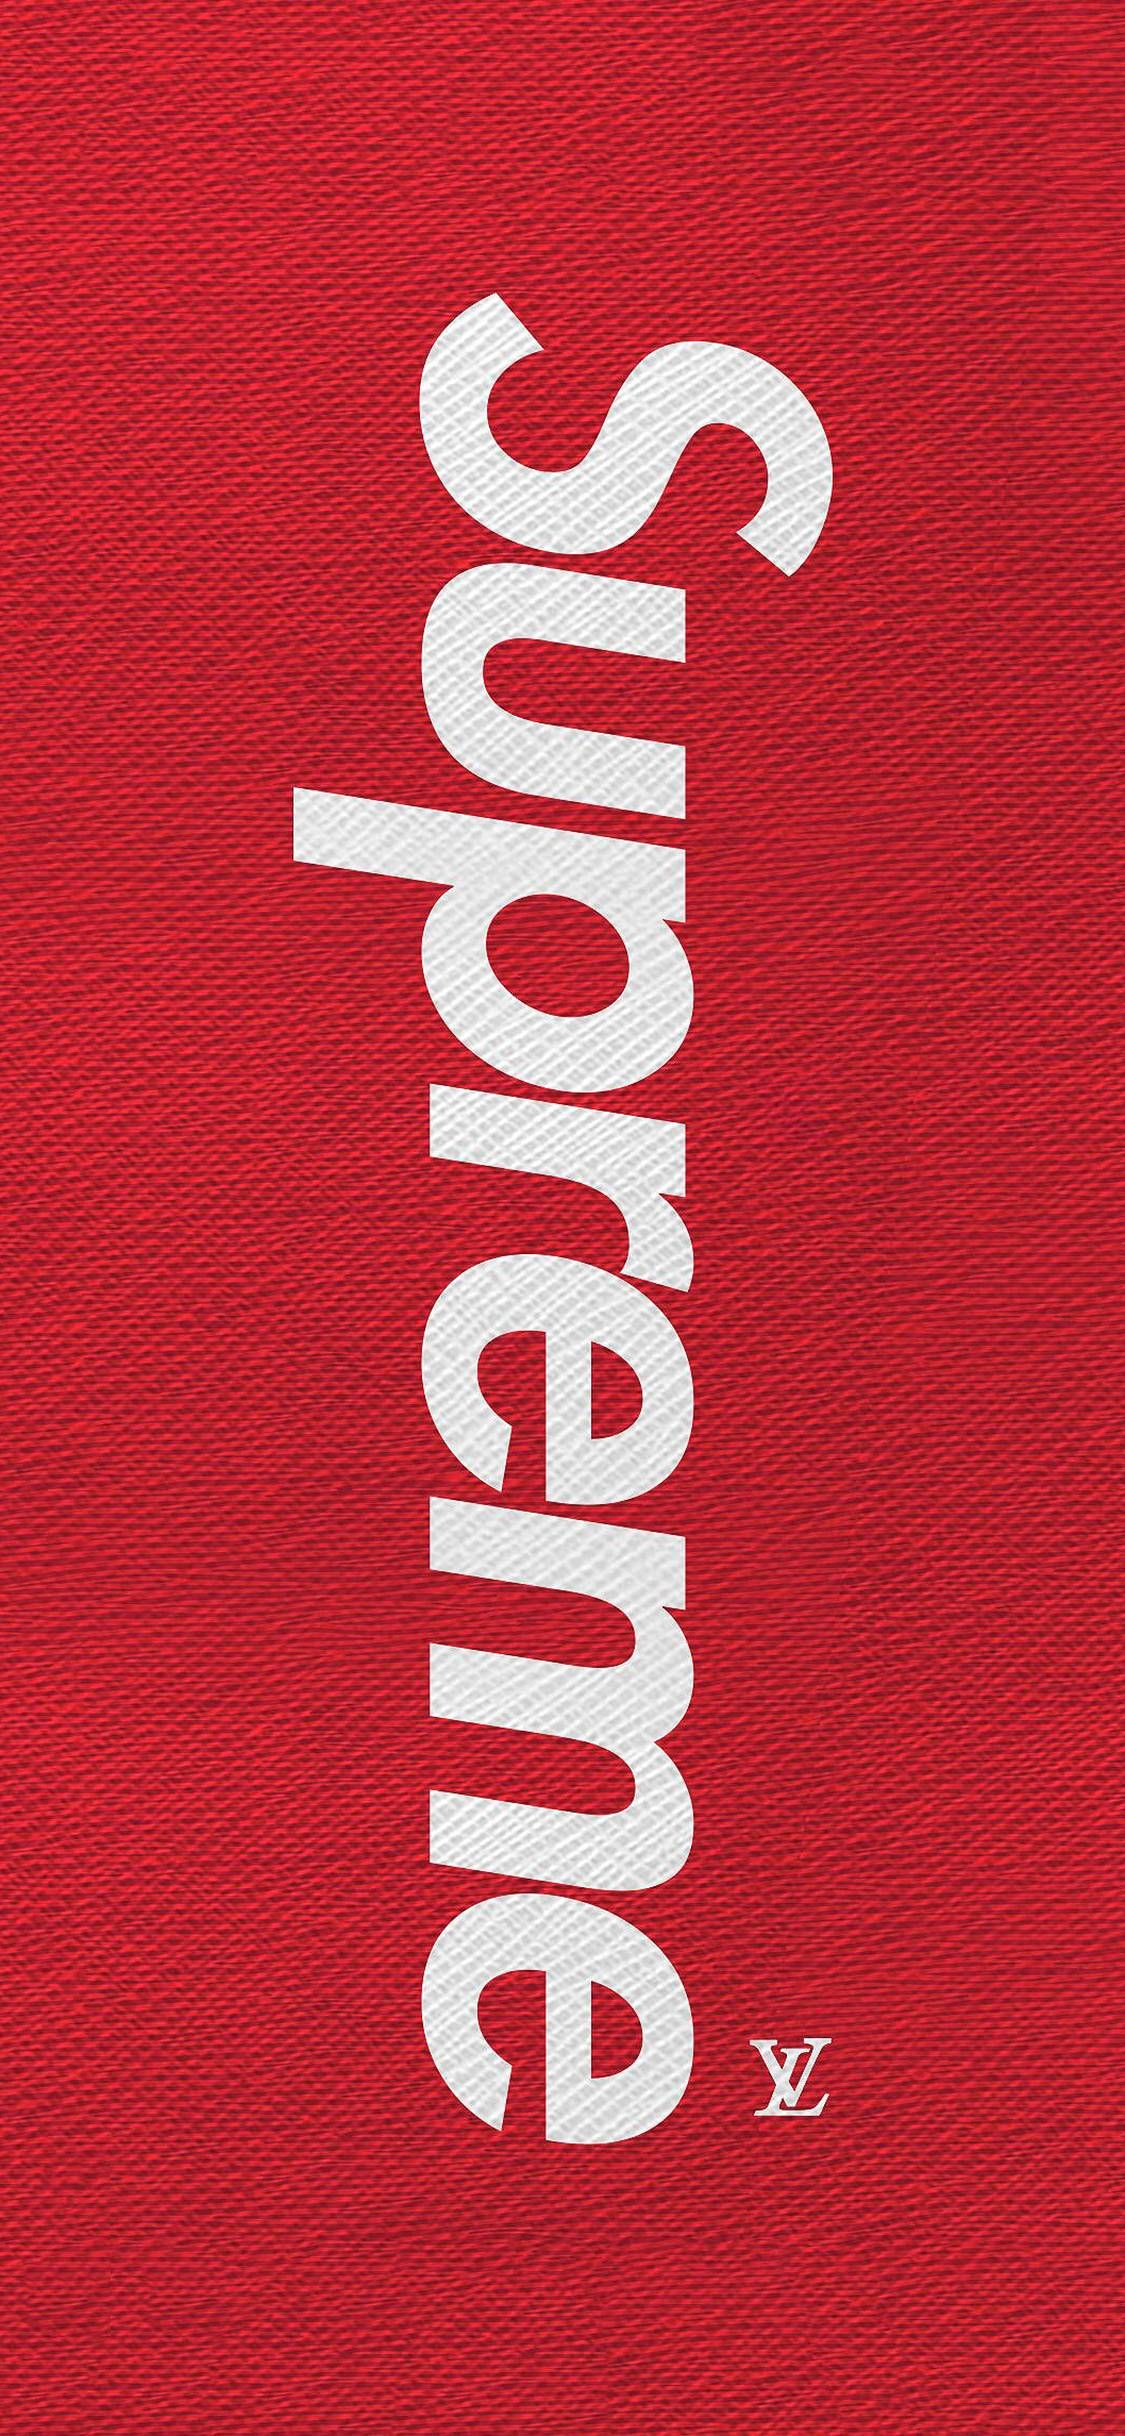 Supreme Lv Combines Brand Logo Wallpapers For Iphone X Iphone Xs And Iphone Xs Max Fre Supreme Iphone Wallpaper Supreme Wallpaper Hypebeast Iphone Wallpaper